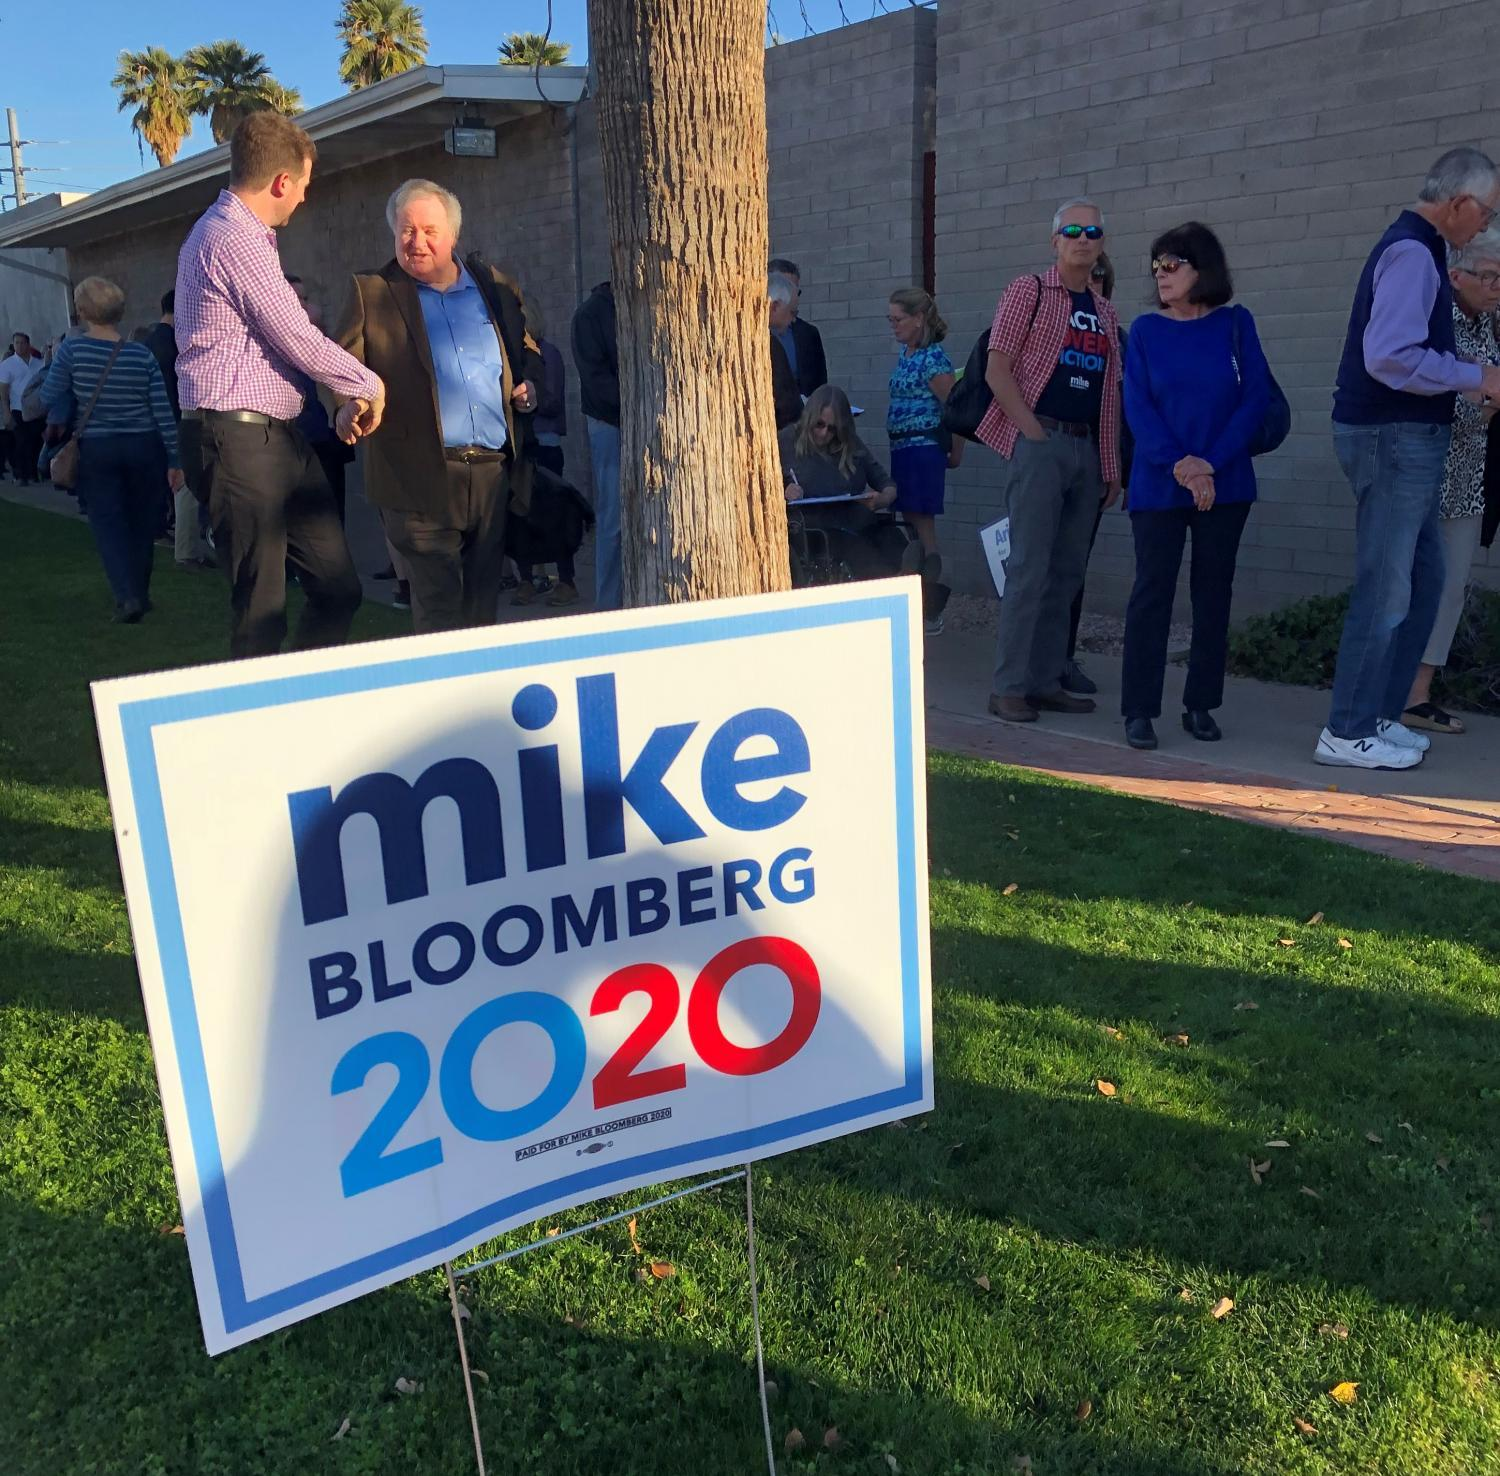 Crowds line up outside a Michael Bloomberg rally in downtown Phoenix.